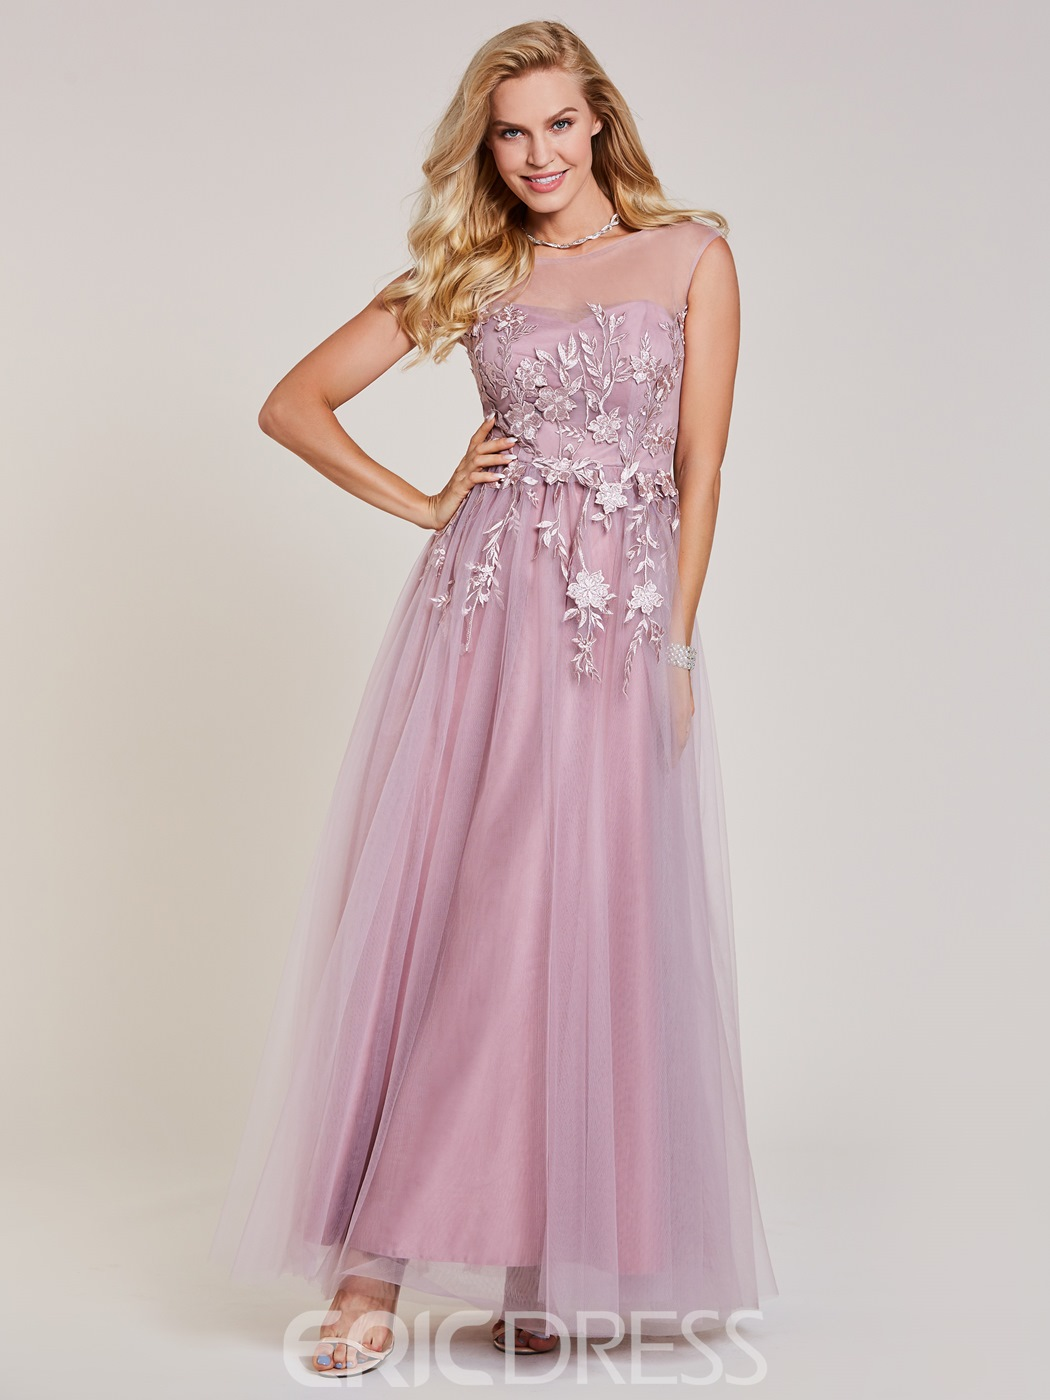 Ericdress Scoop Neck Appliques A Line Prom Dress